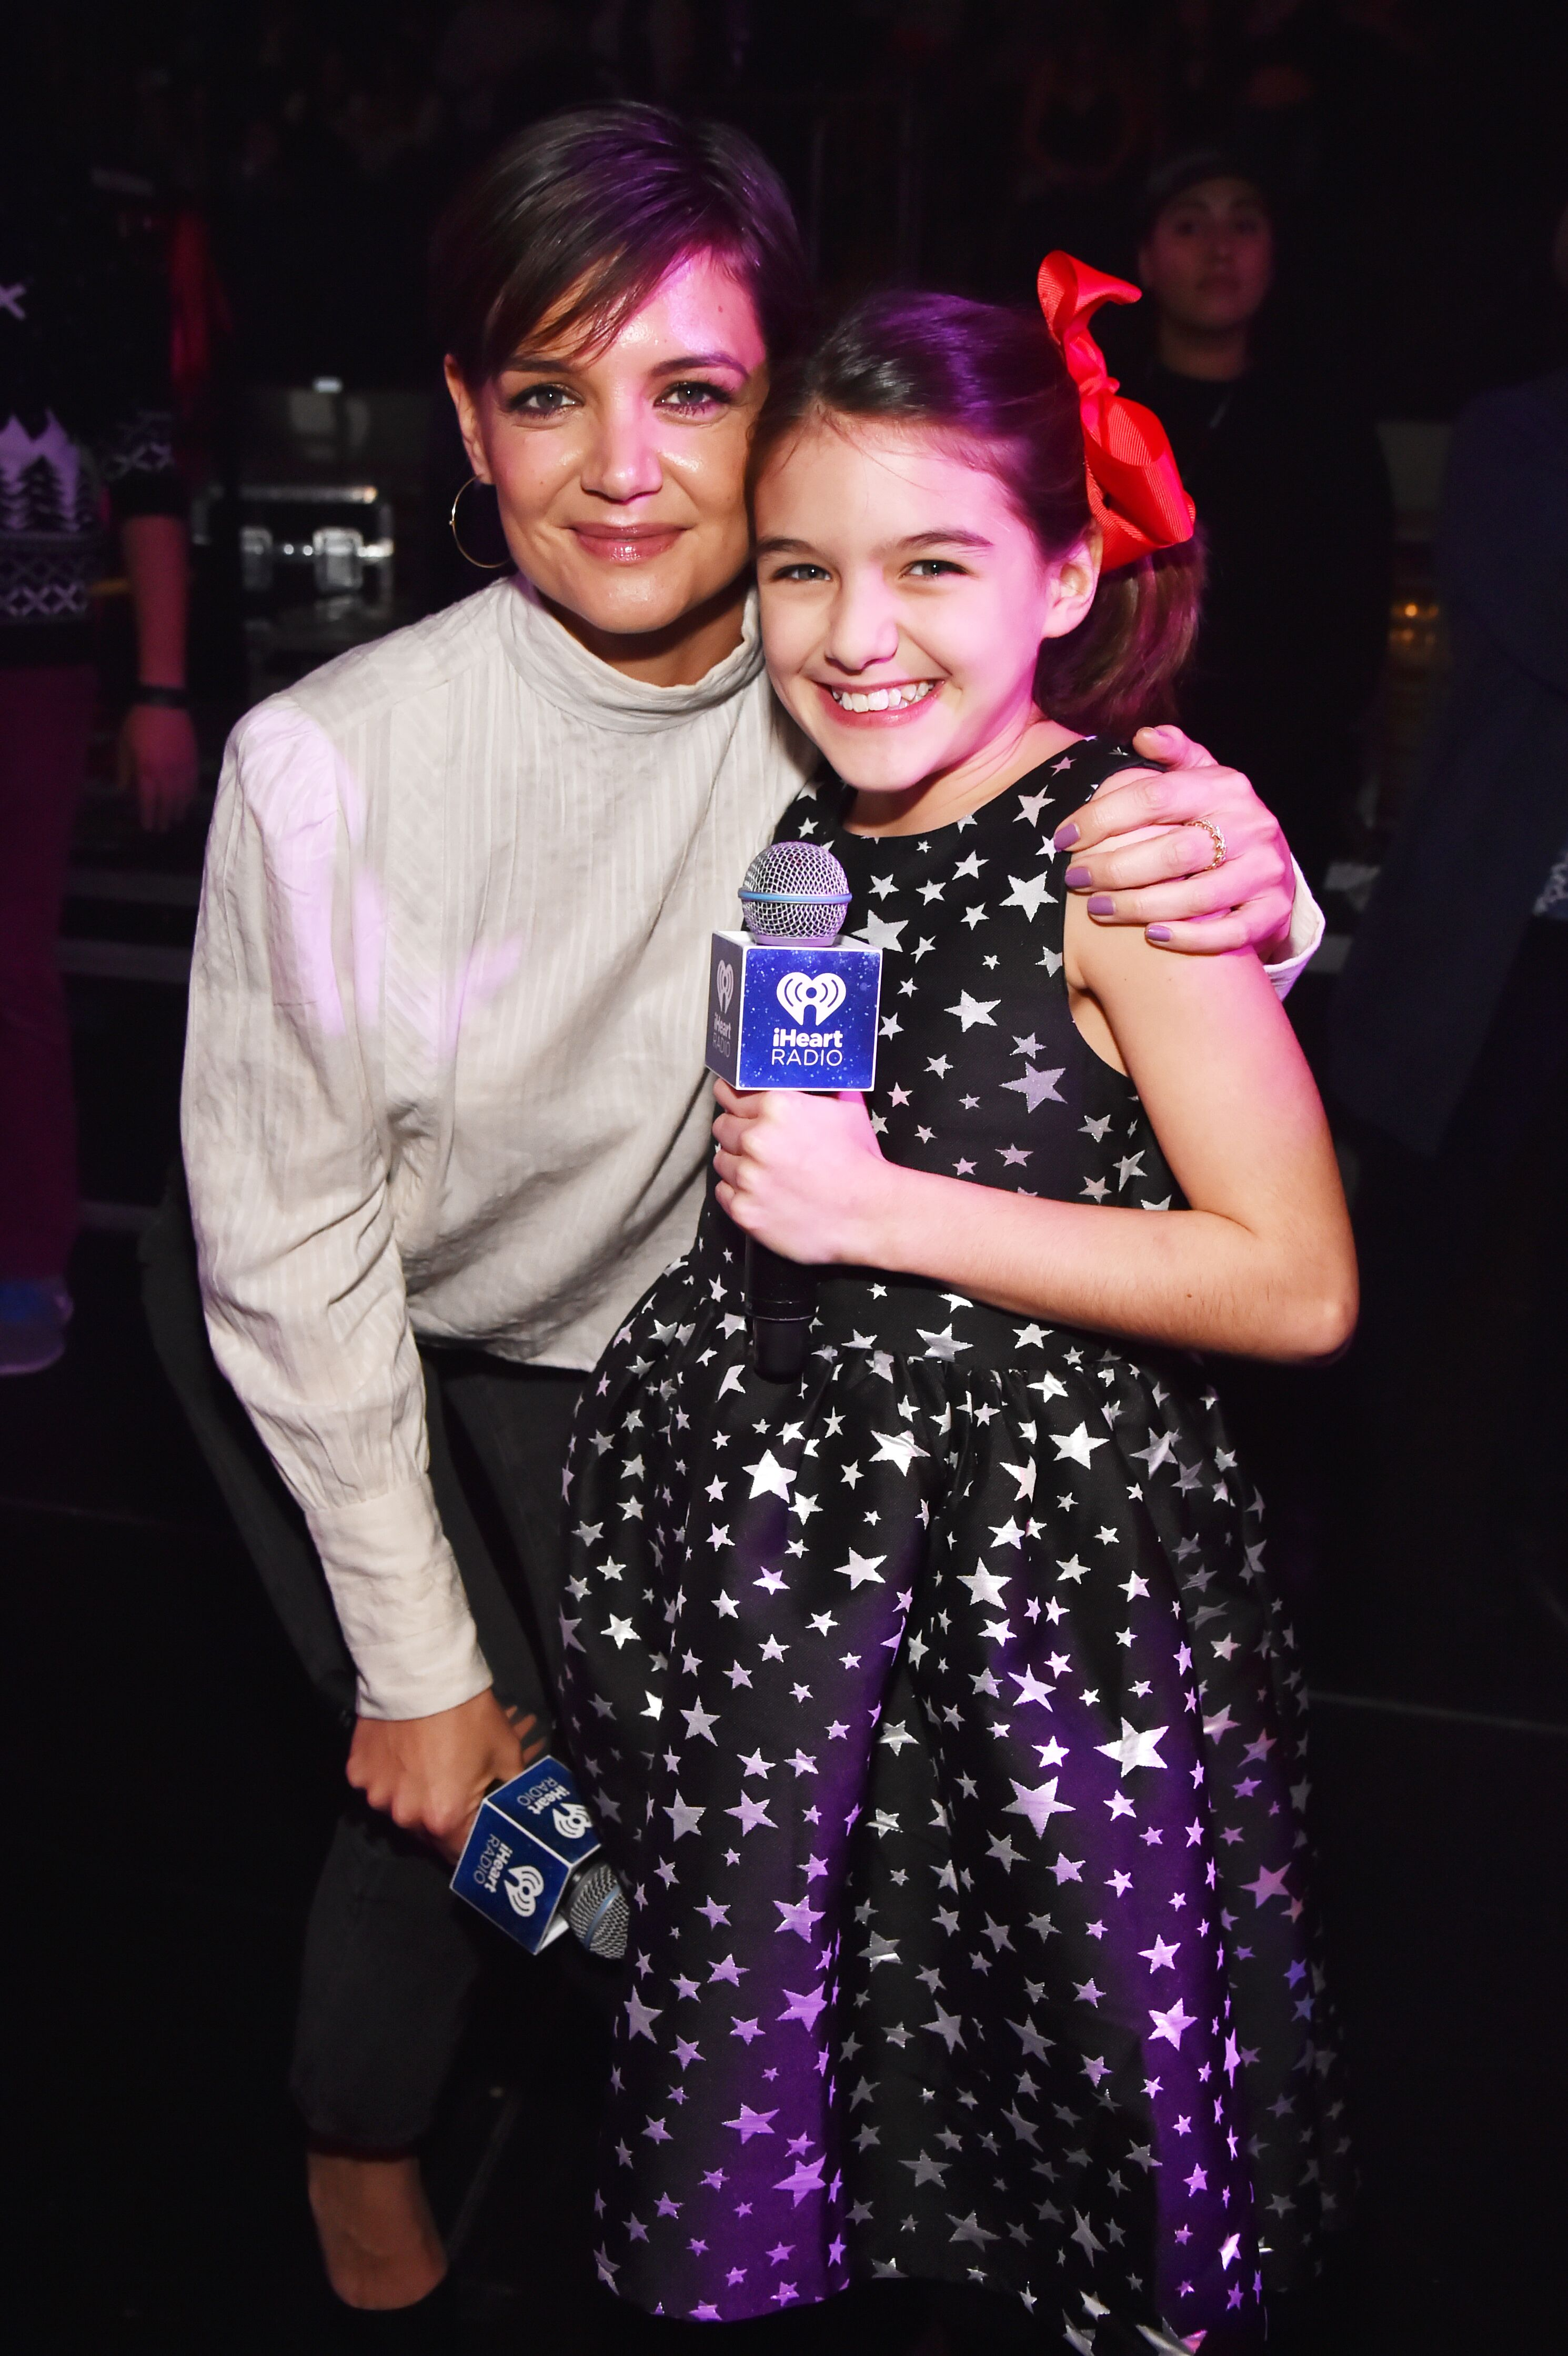 Katie Holmes and Suri Cruise attend the Z100's Jingle Ball 2017 on December 8, 2017 in New York City | Photo: Getty Images